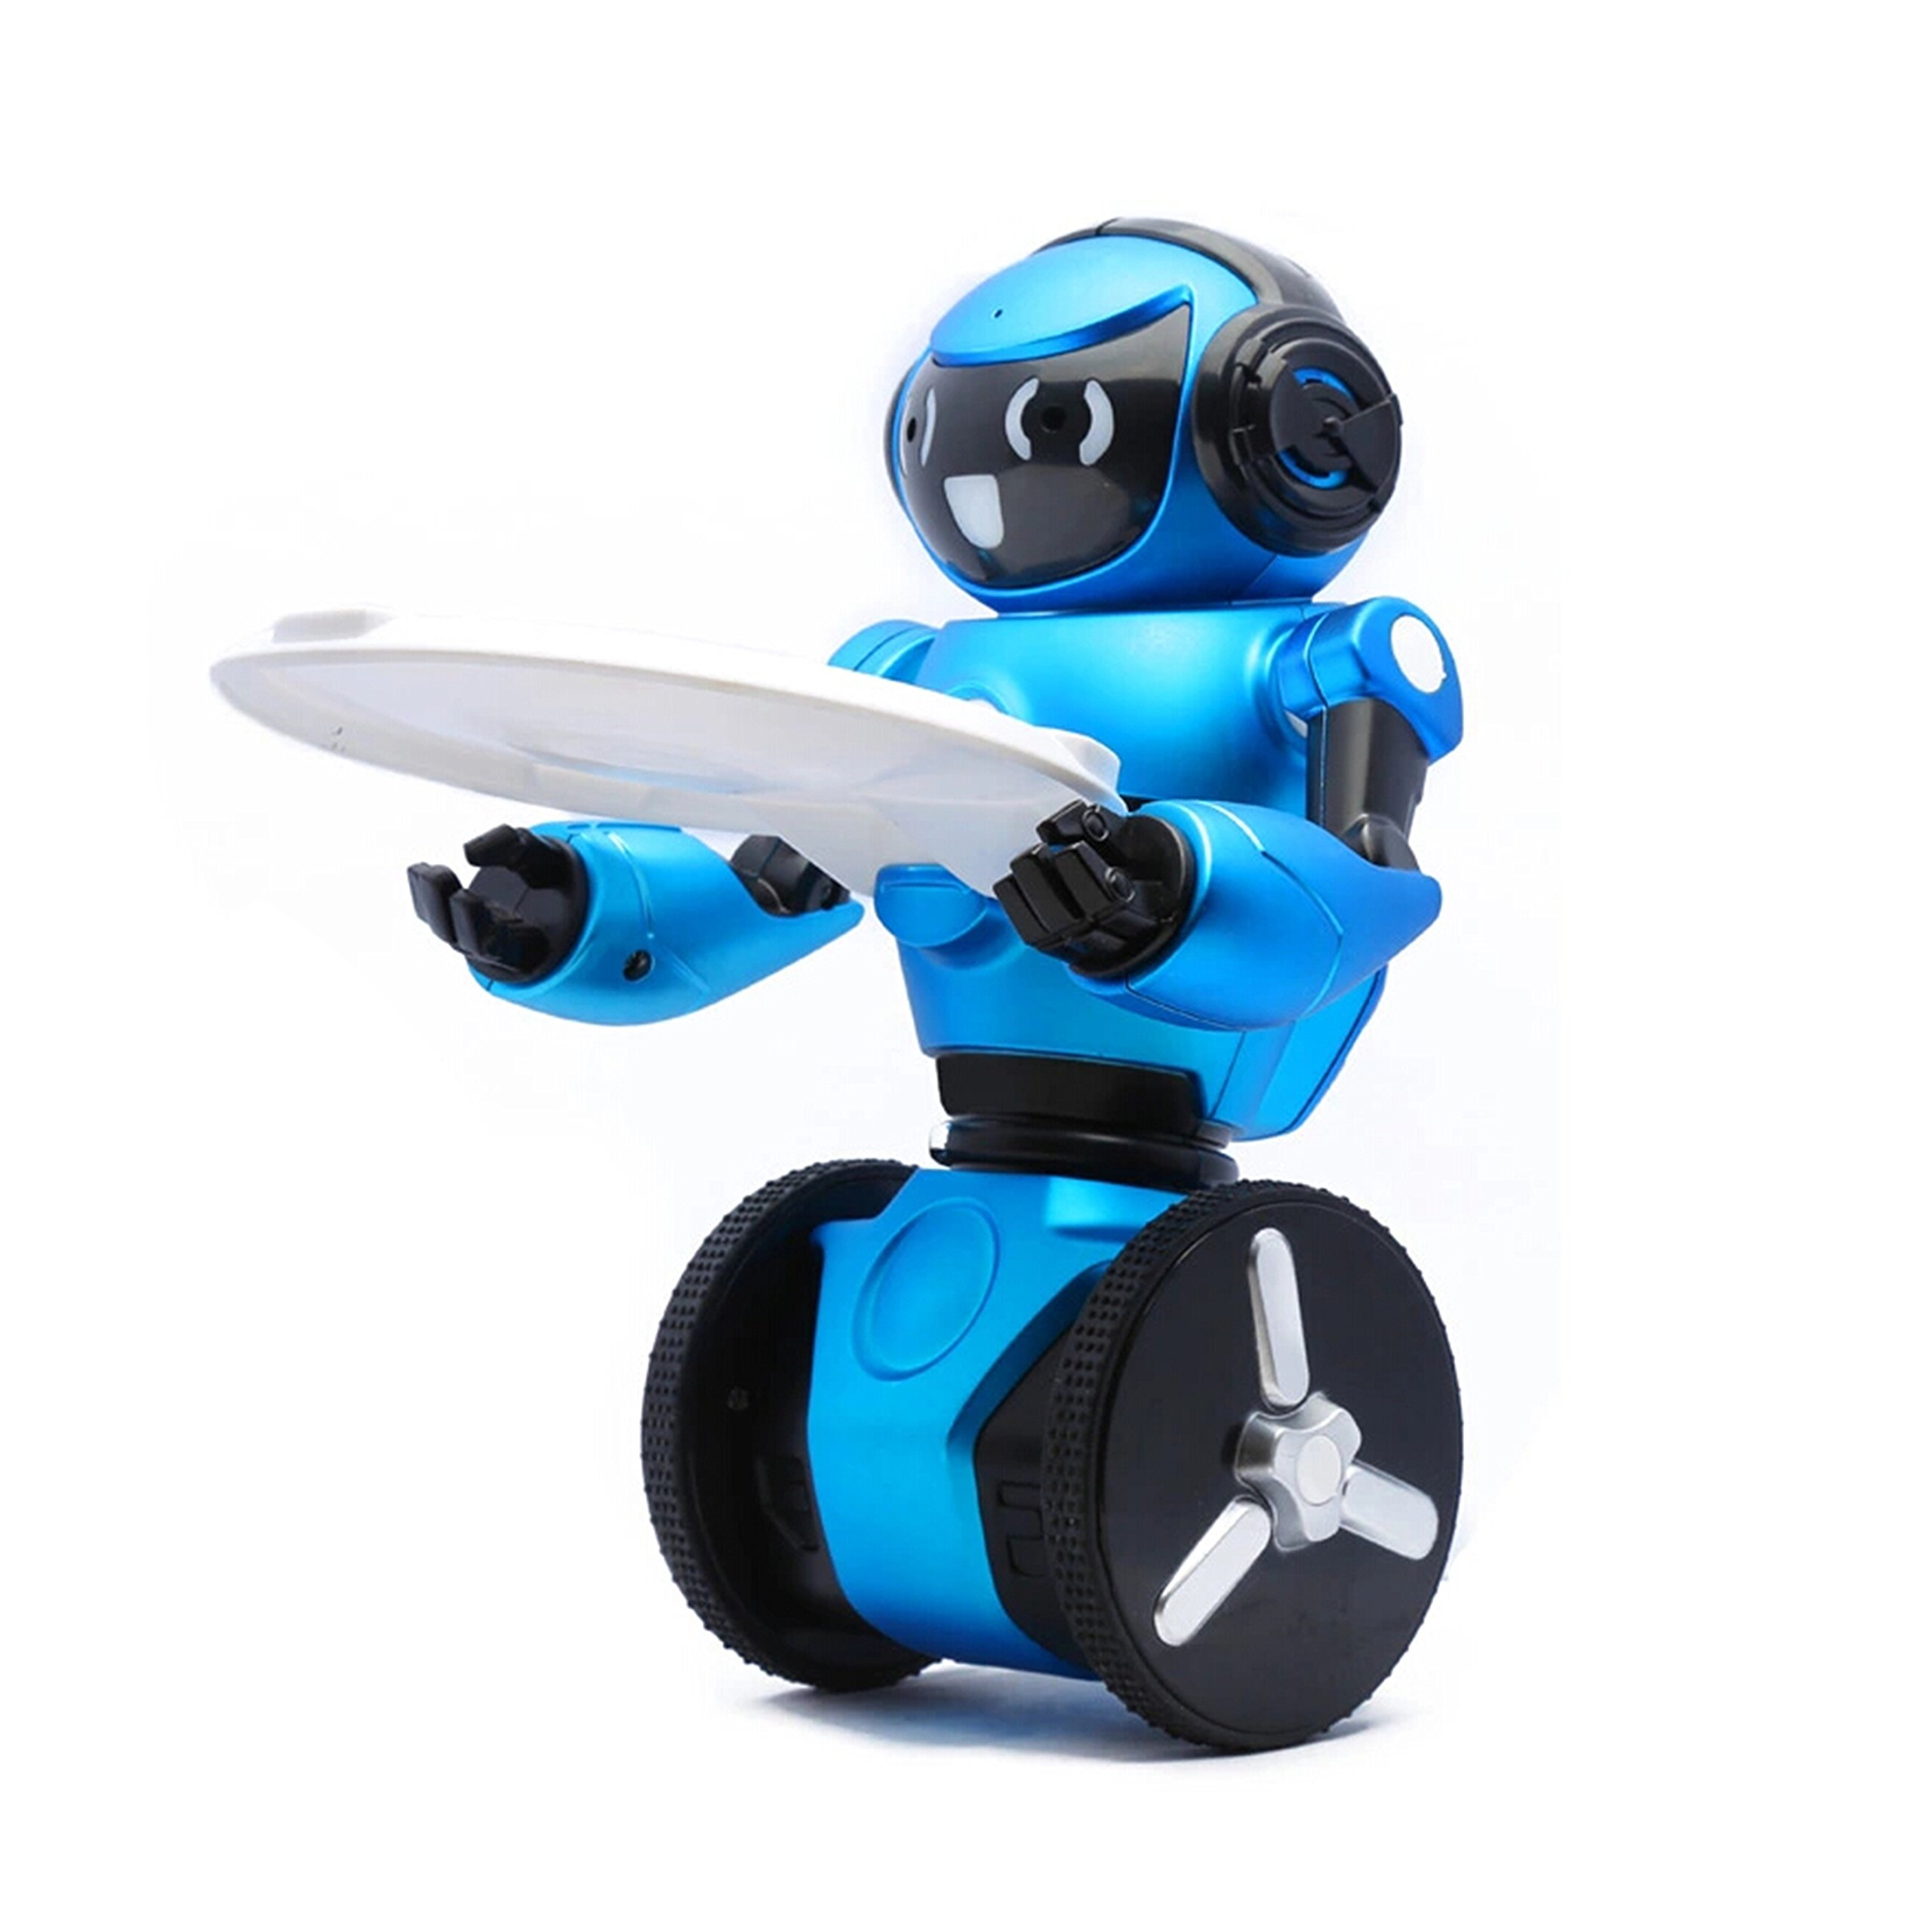 WLToys Intelligent Two Wheels Balance RC Robot Toy with Dance Music Avoidance Human-computer Interaction Mode for Children Kids as a Gift *Colors May Vary. by WLtoys (Image #2)